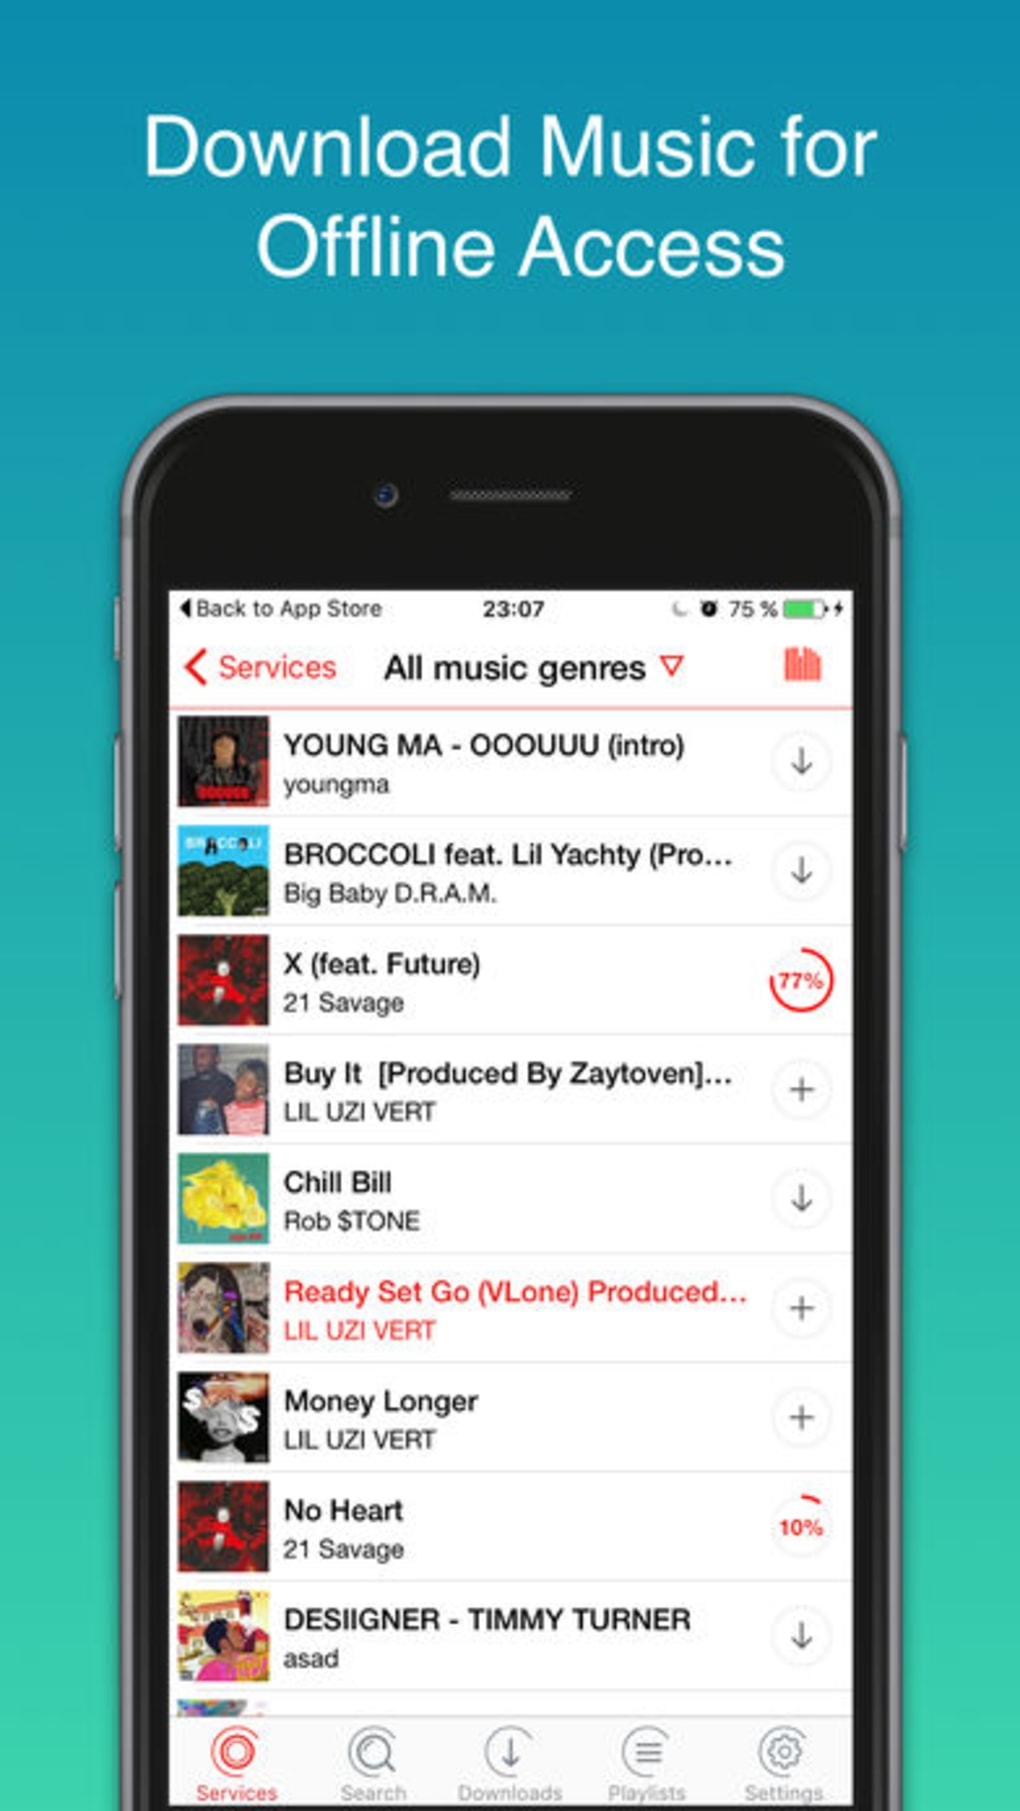 Make Sound Player Offline Mp3 for iPhone - Download